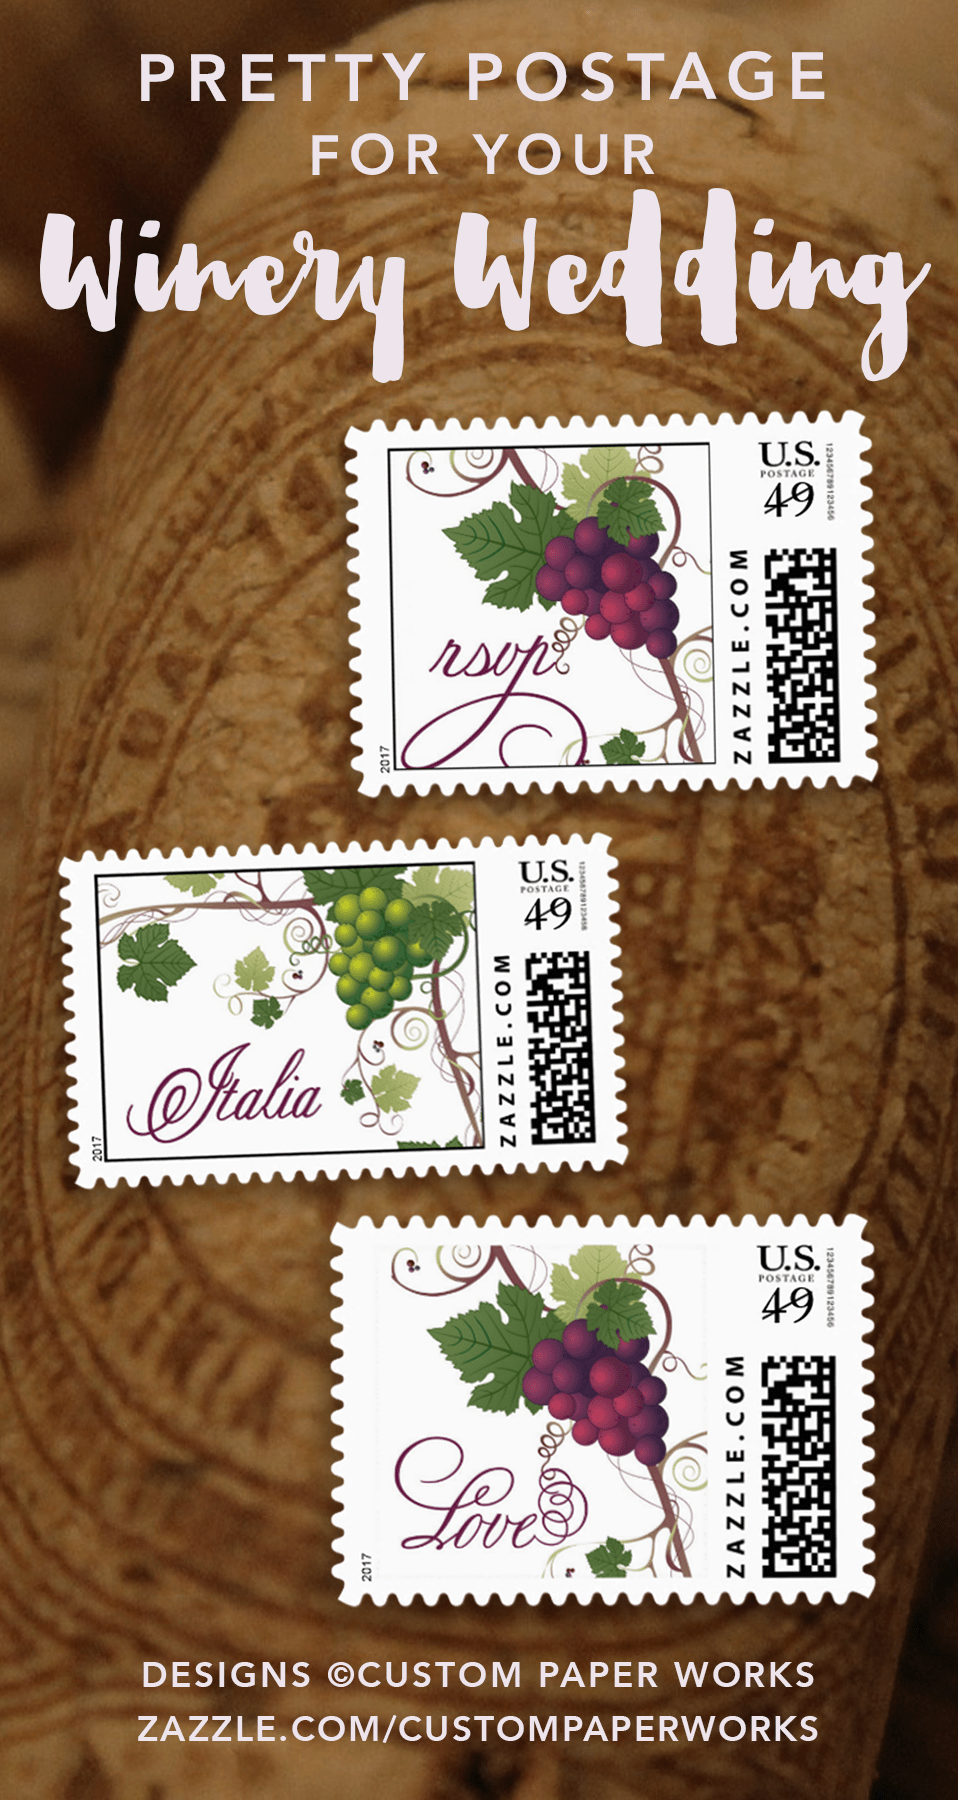 Custom postage stamps for wine and winery weddings